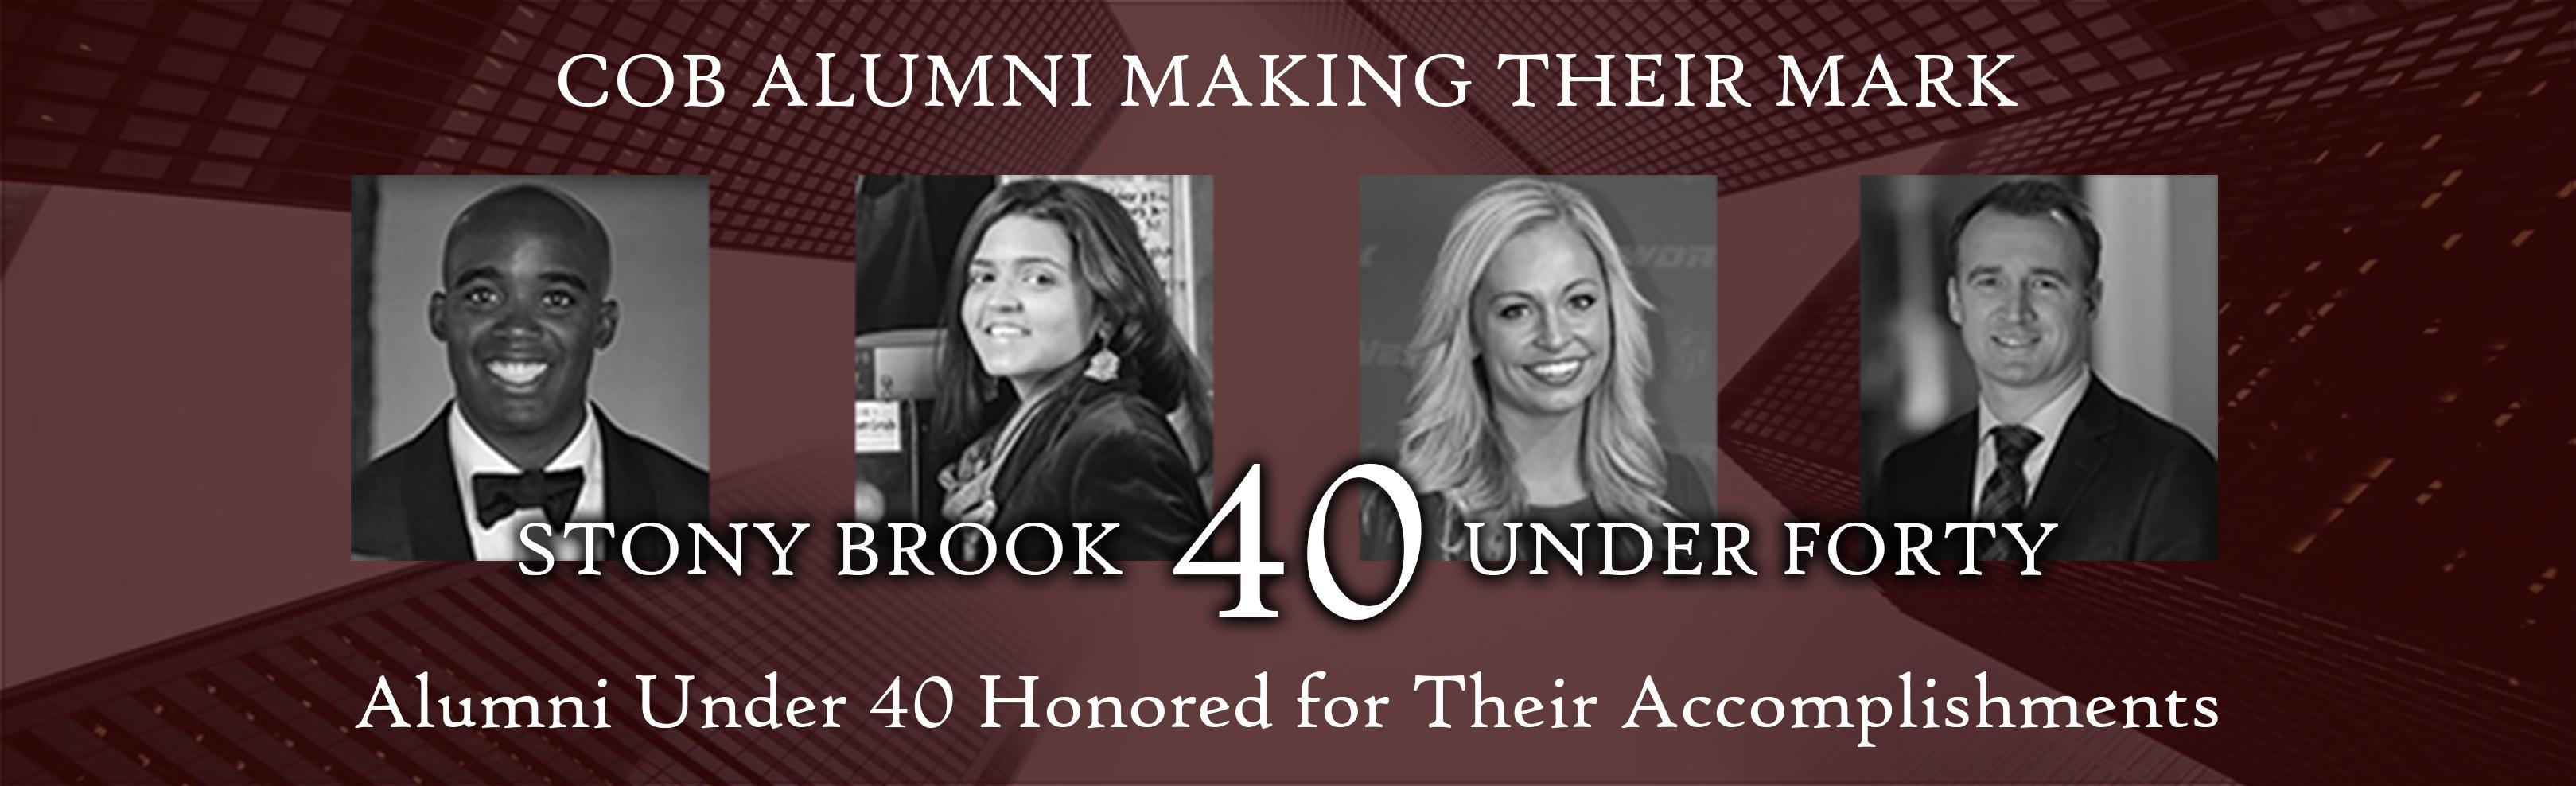 Stony Brook College of Business 40 Under Forty